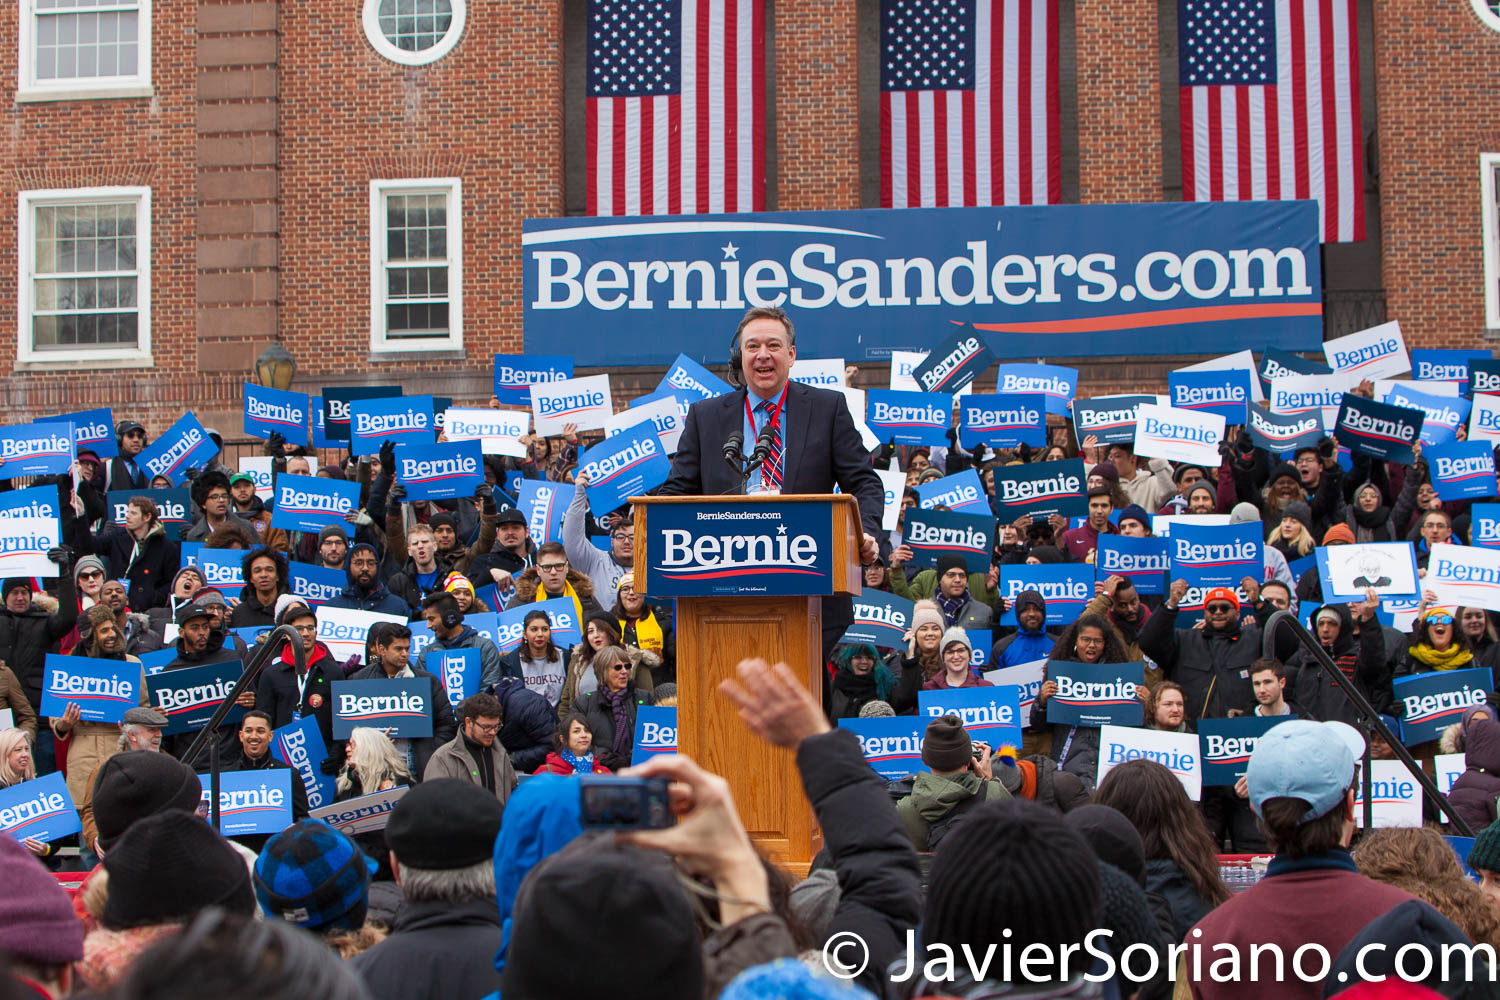 Saturday, March 2, 2019. Brooklyn College. Brooklyn, New York City. This man is making sure that the microphones are working. People waiting for U.S. Senator and presidential candidate Bernie Sanders. This is the first event of his 2020 presidential campaign. Photo by Javier Soriano/www.JavierSoriano.com